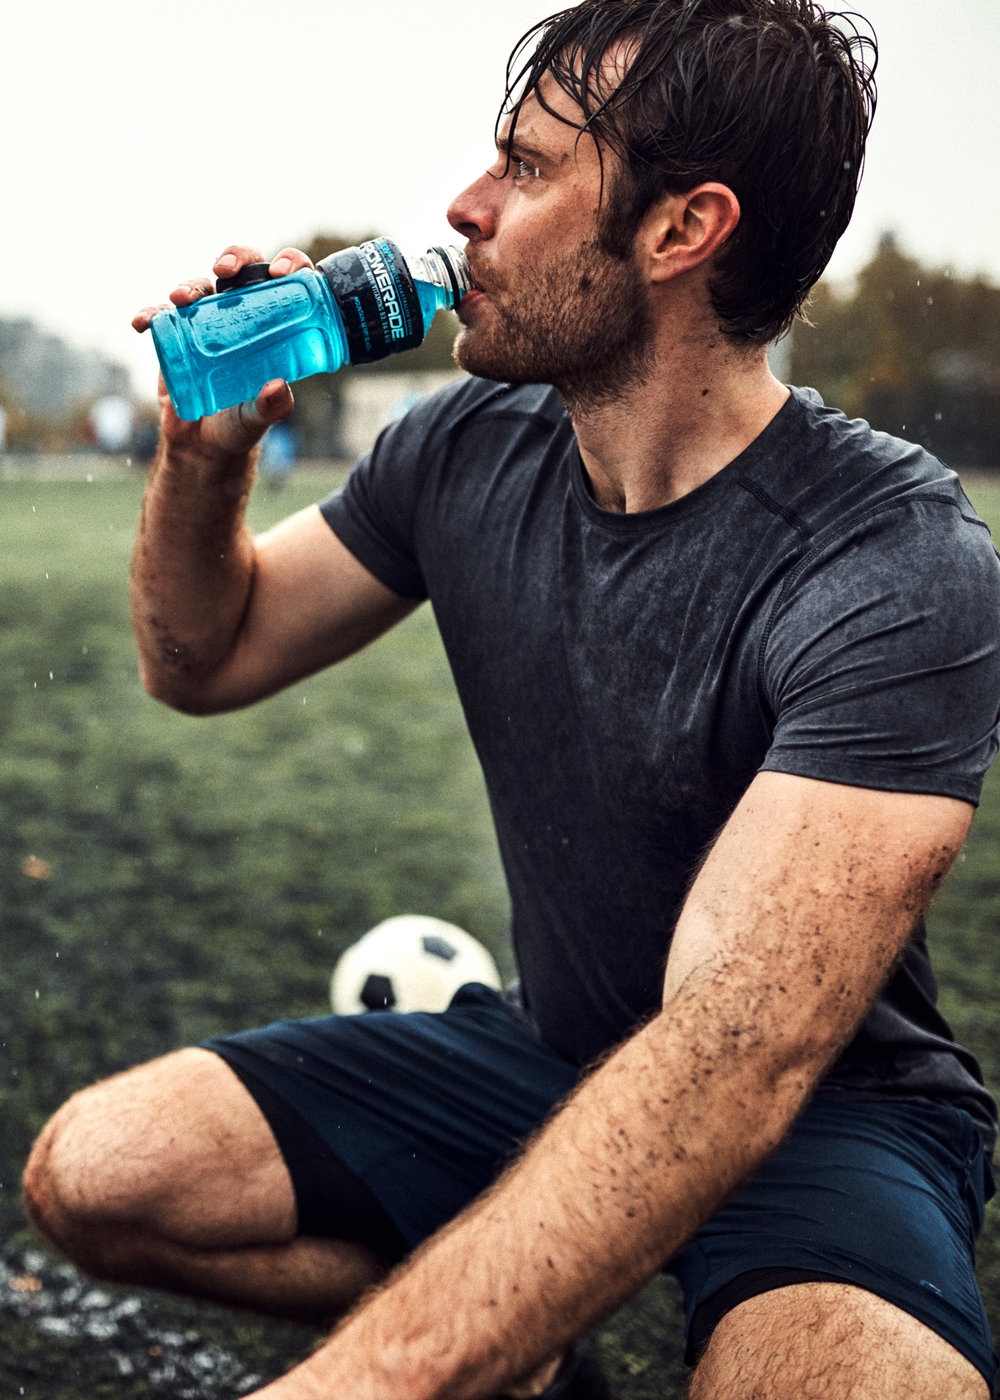 jeff-allen-web-COCA_COLA_161027_10_SOCCER_POWERADE_411_VERT_CROP.jpg